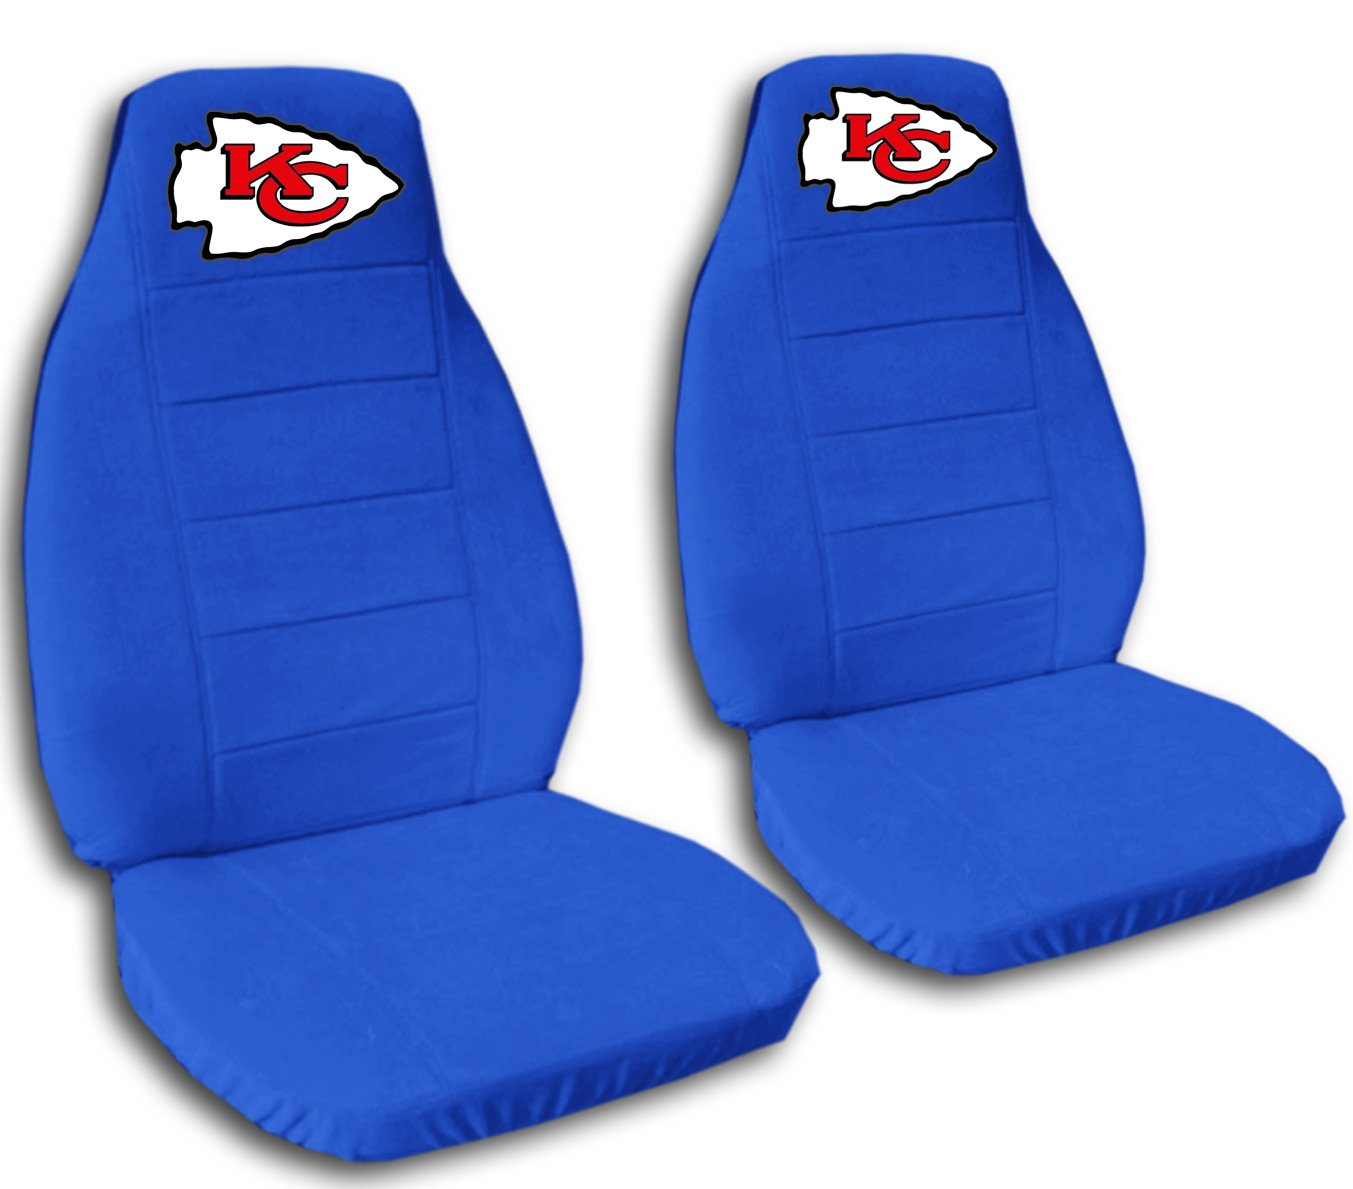 2 Medium Blue Kansas City seat covers for a 2007 to 2012 Chevrolet Silverado. Side airbag friendly.